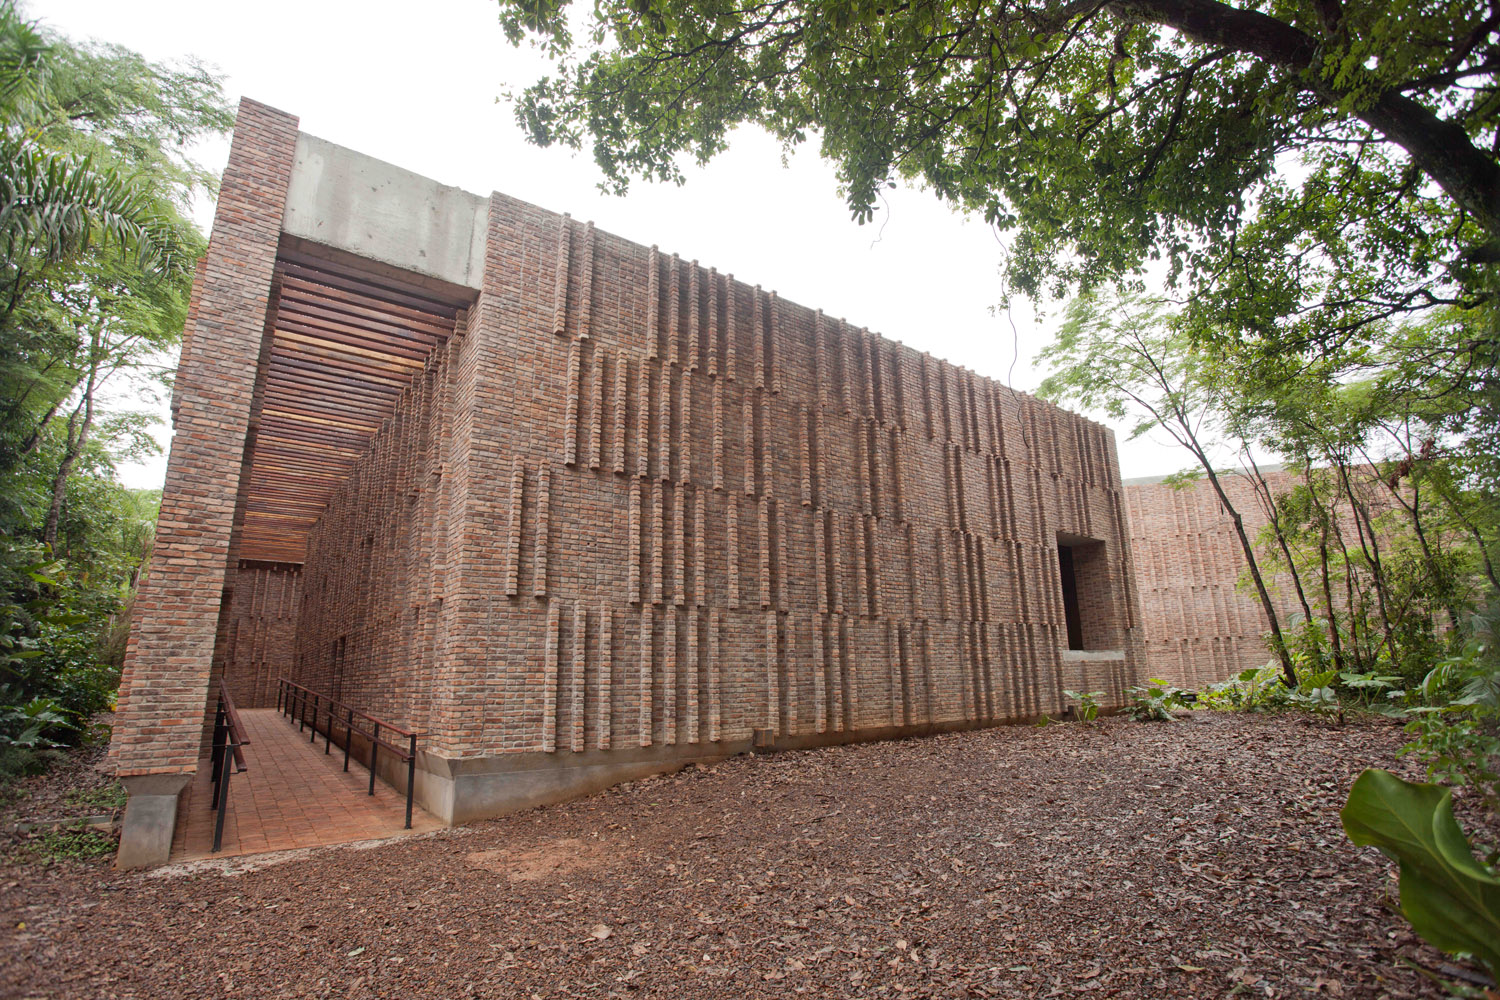 Galeria Claudia Andujar in Inhotim, Architektur: Arquitetos Associados, © William Gomes